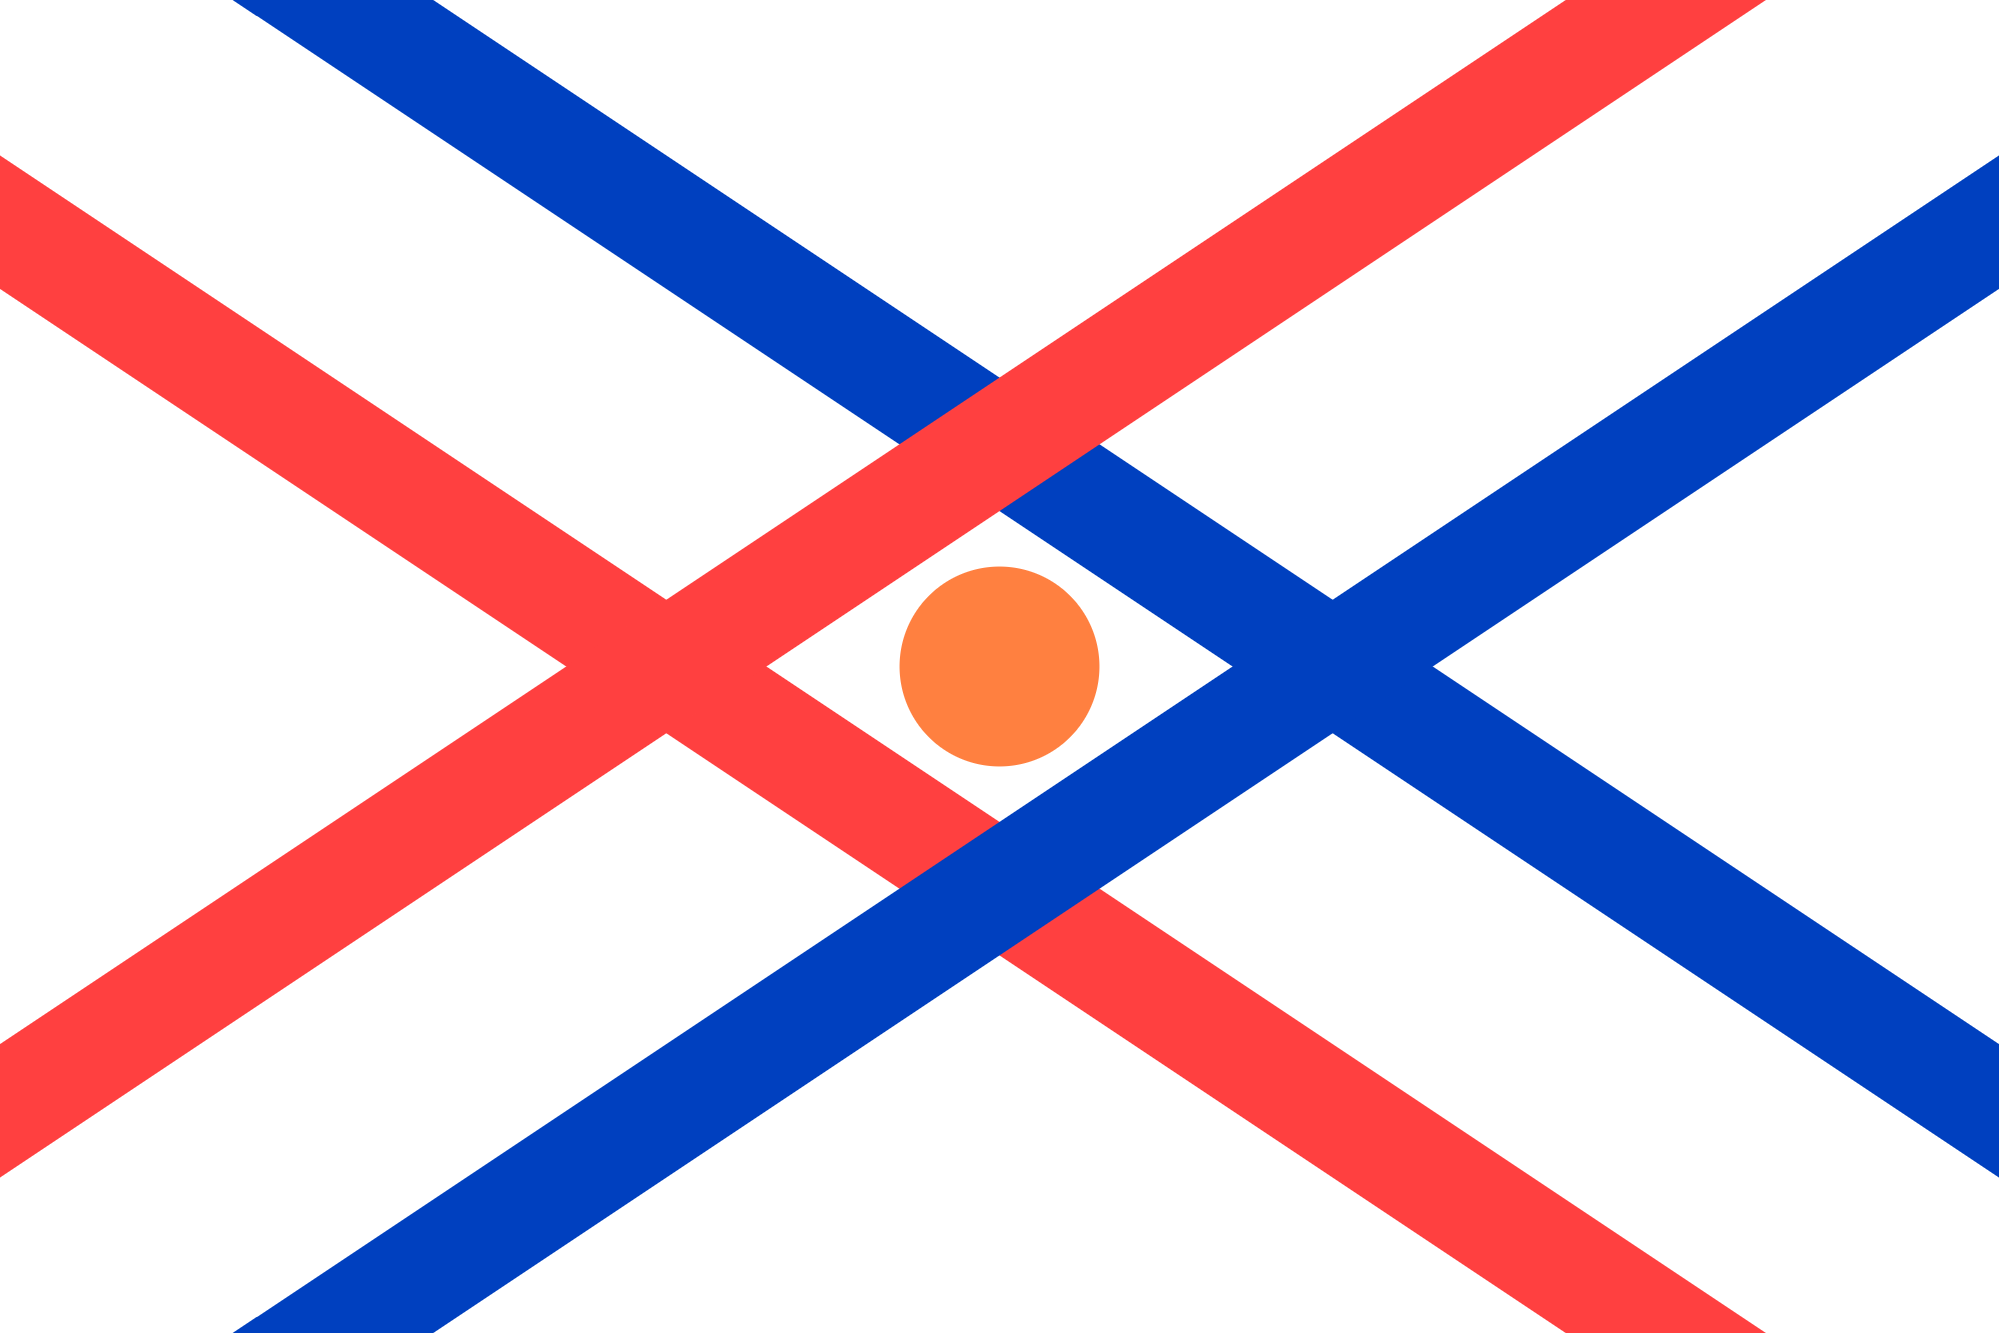 Assyrian flag redesign inspired by u/Foofalo : vexillology.